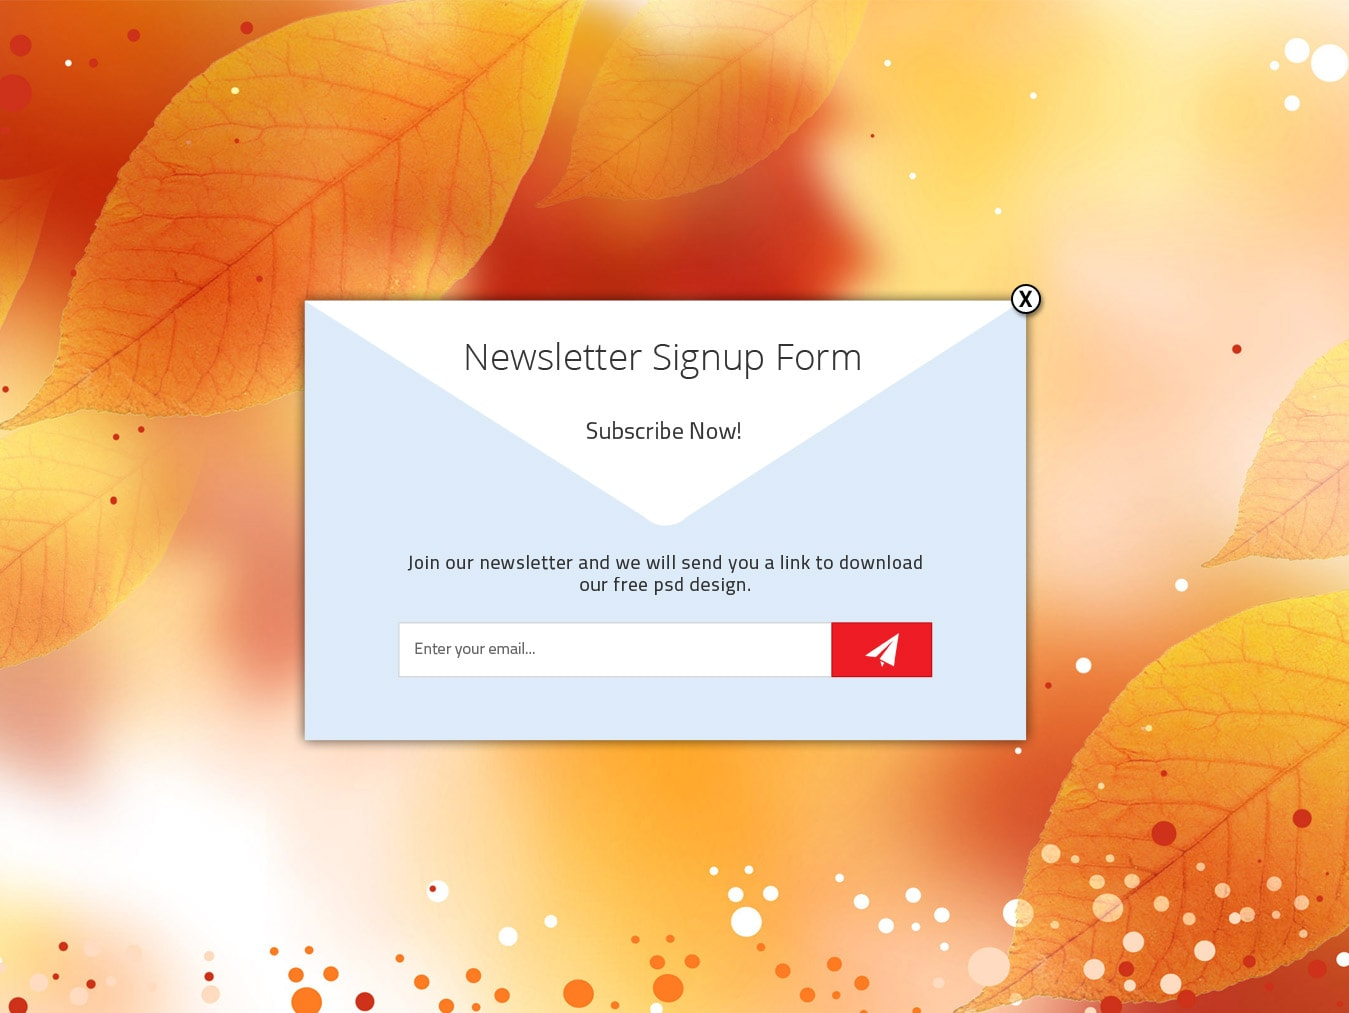 Newsletter signup form free psd design